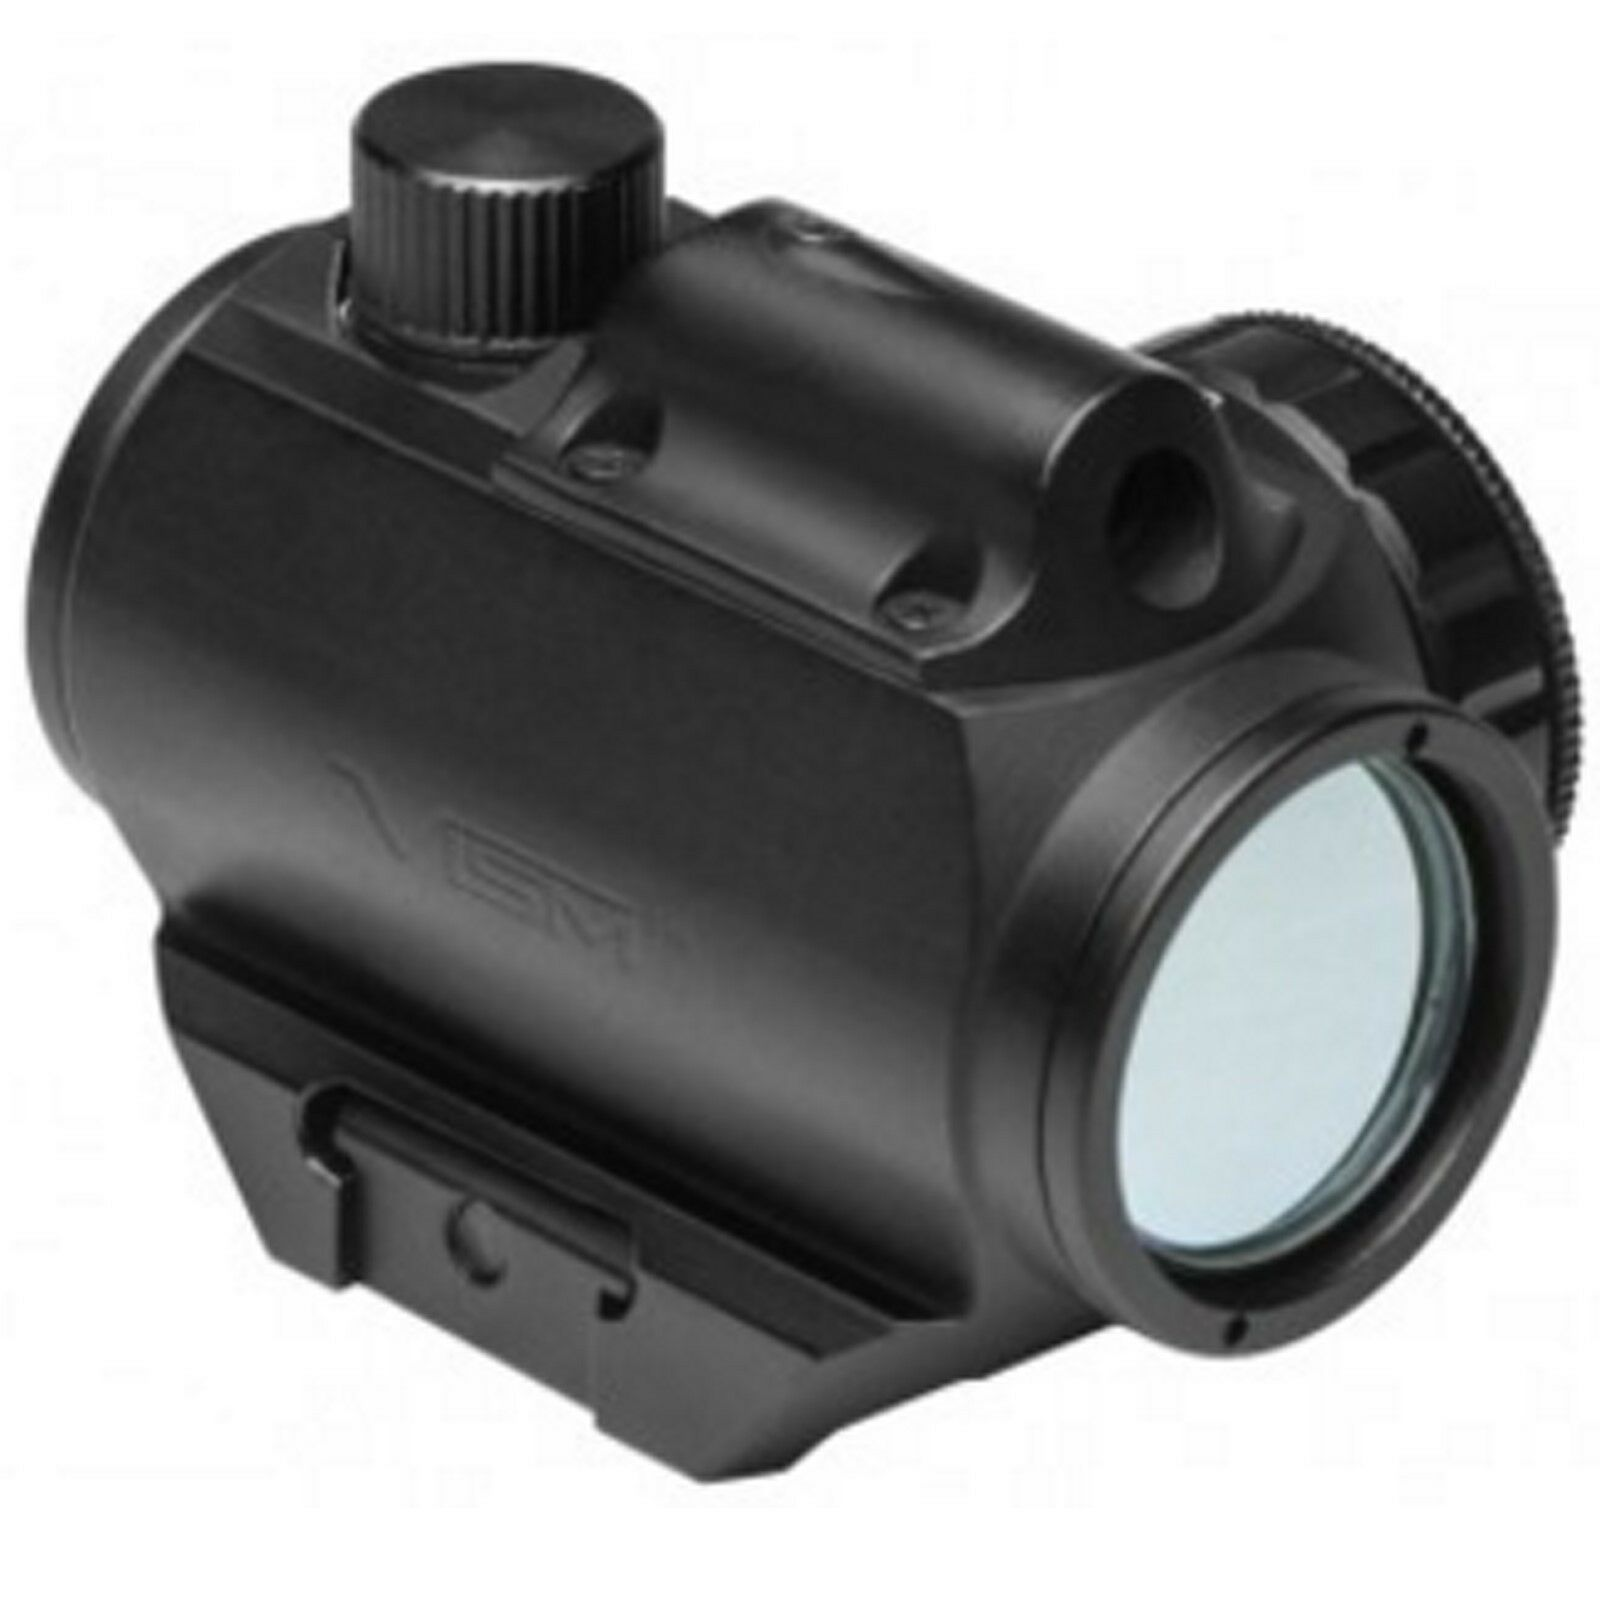 NcSTAR VISM VDGRLB Micro Green Dot Reflex Sight Optic w  Integrated Red Laser